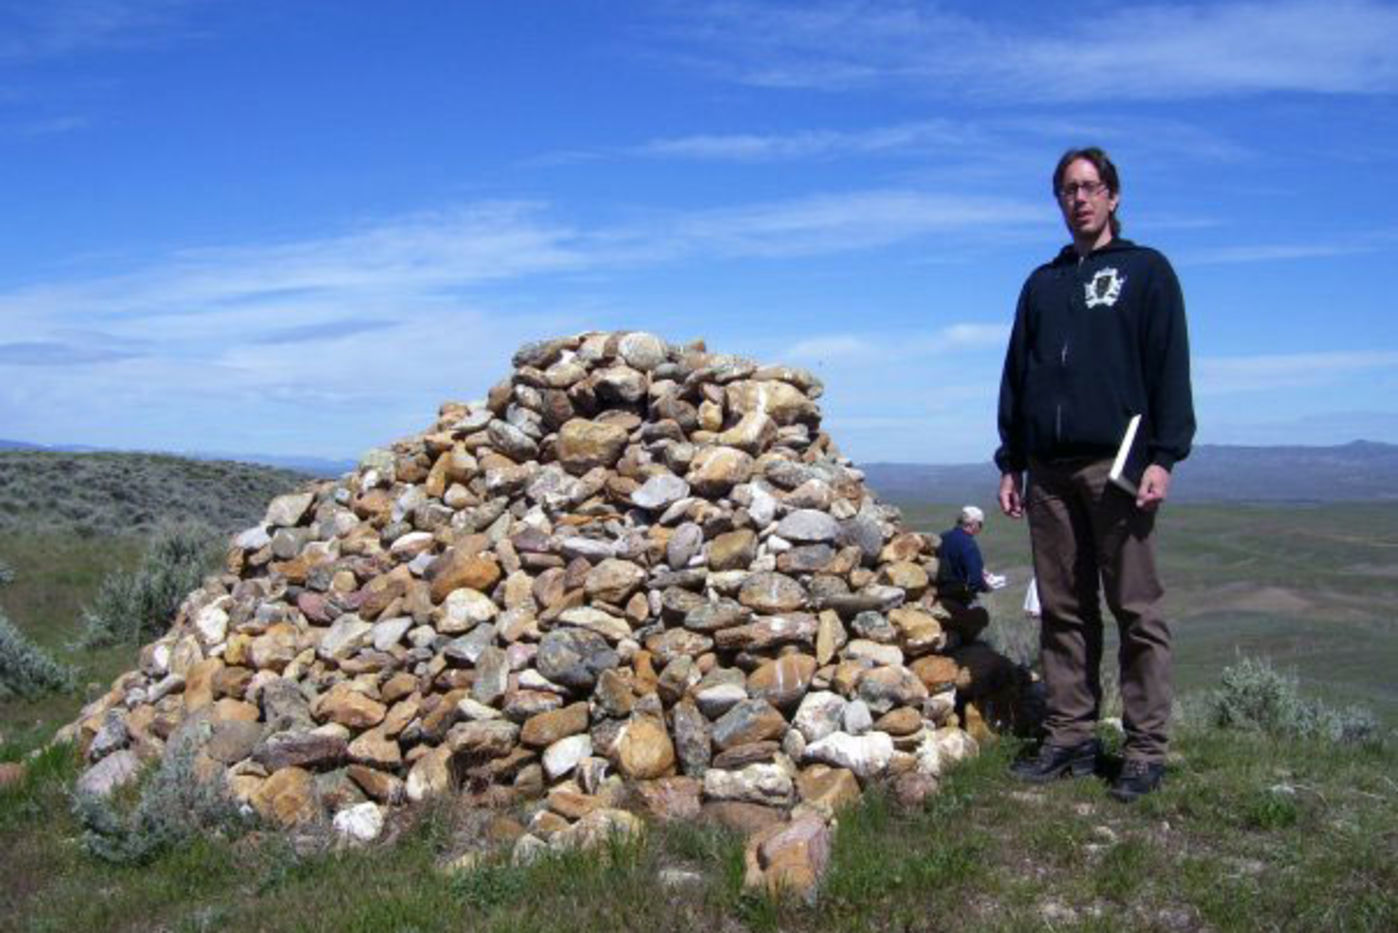 A man stands next to a stacked stone structure with a wide expanse of plains in the background.